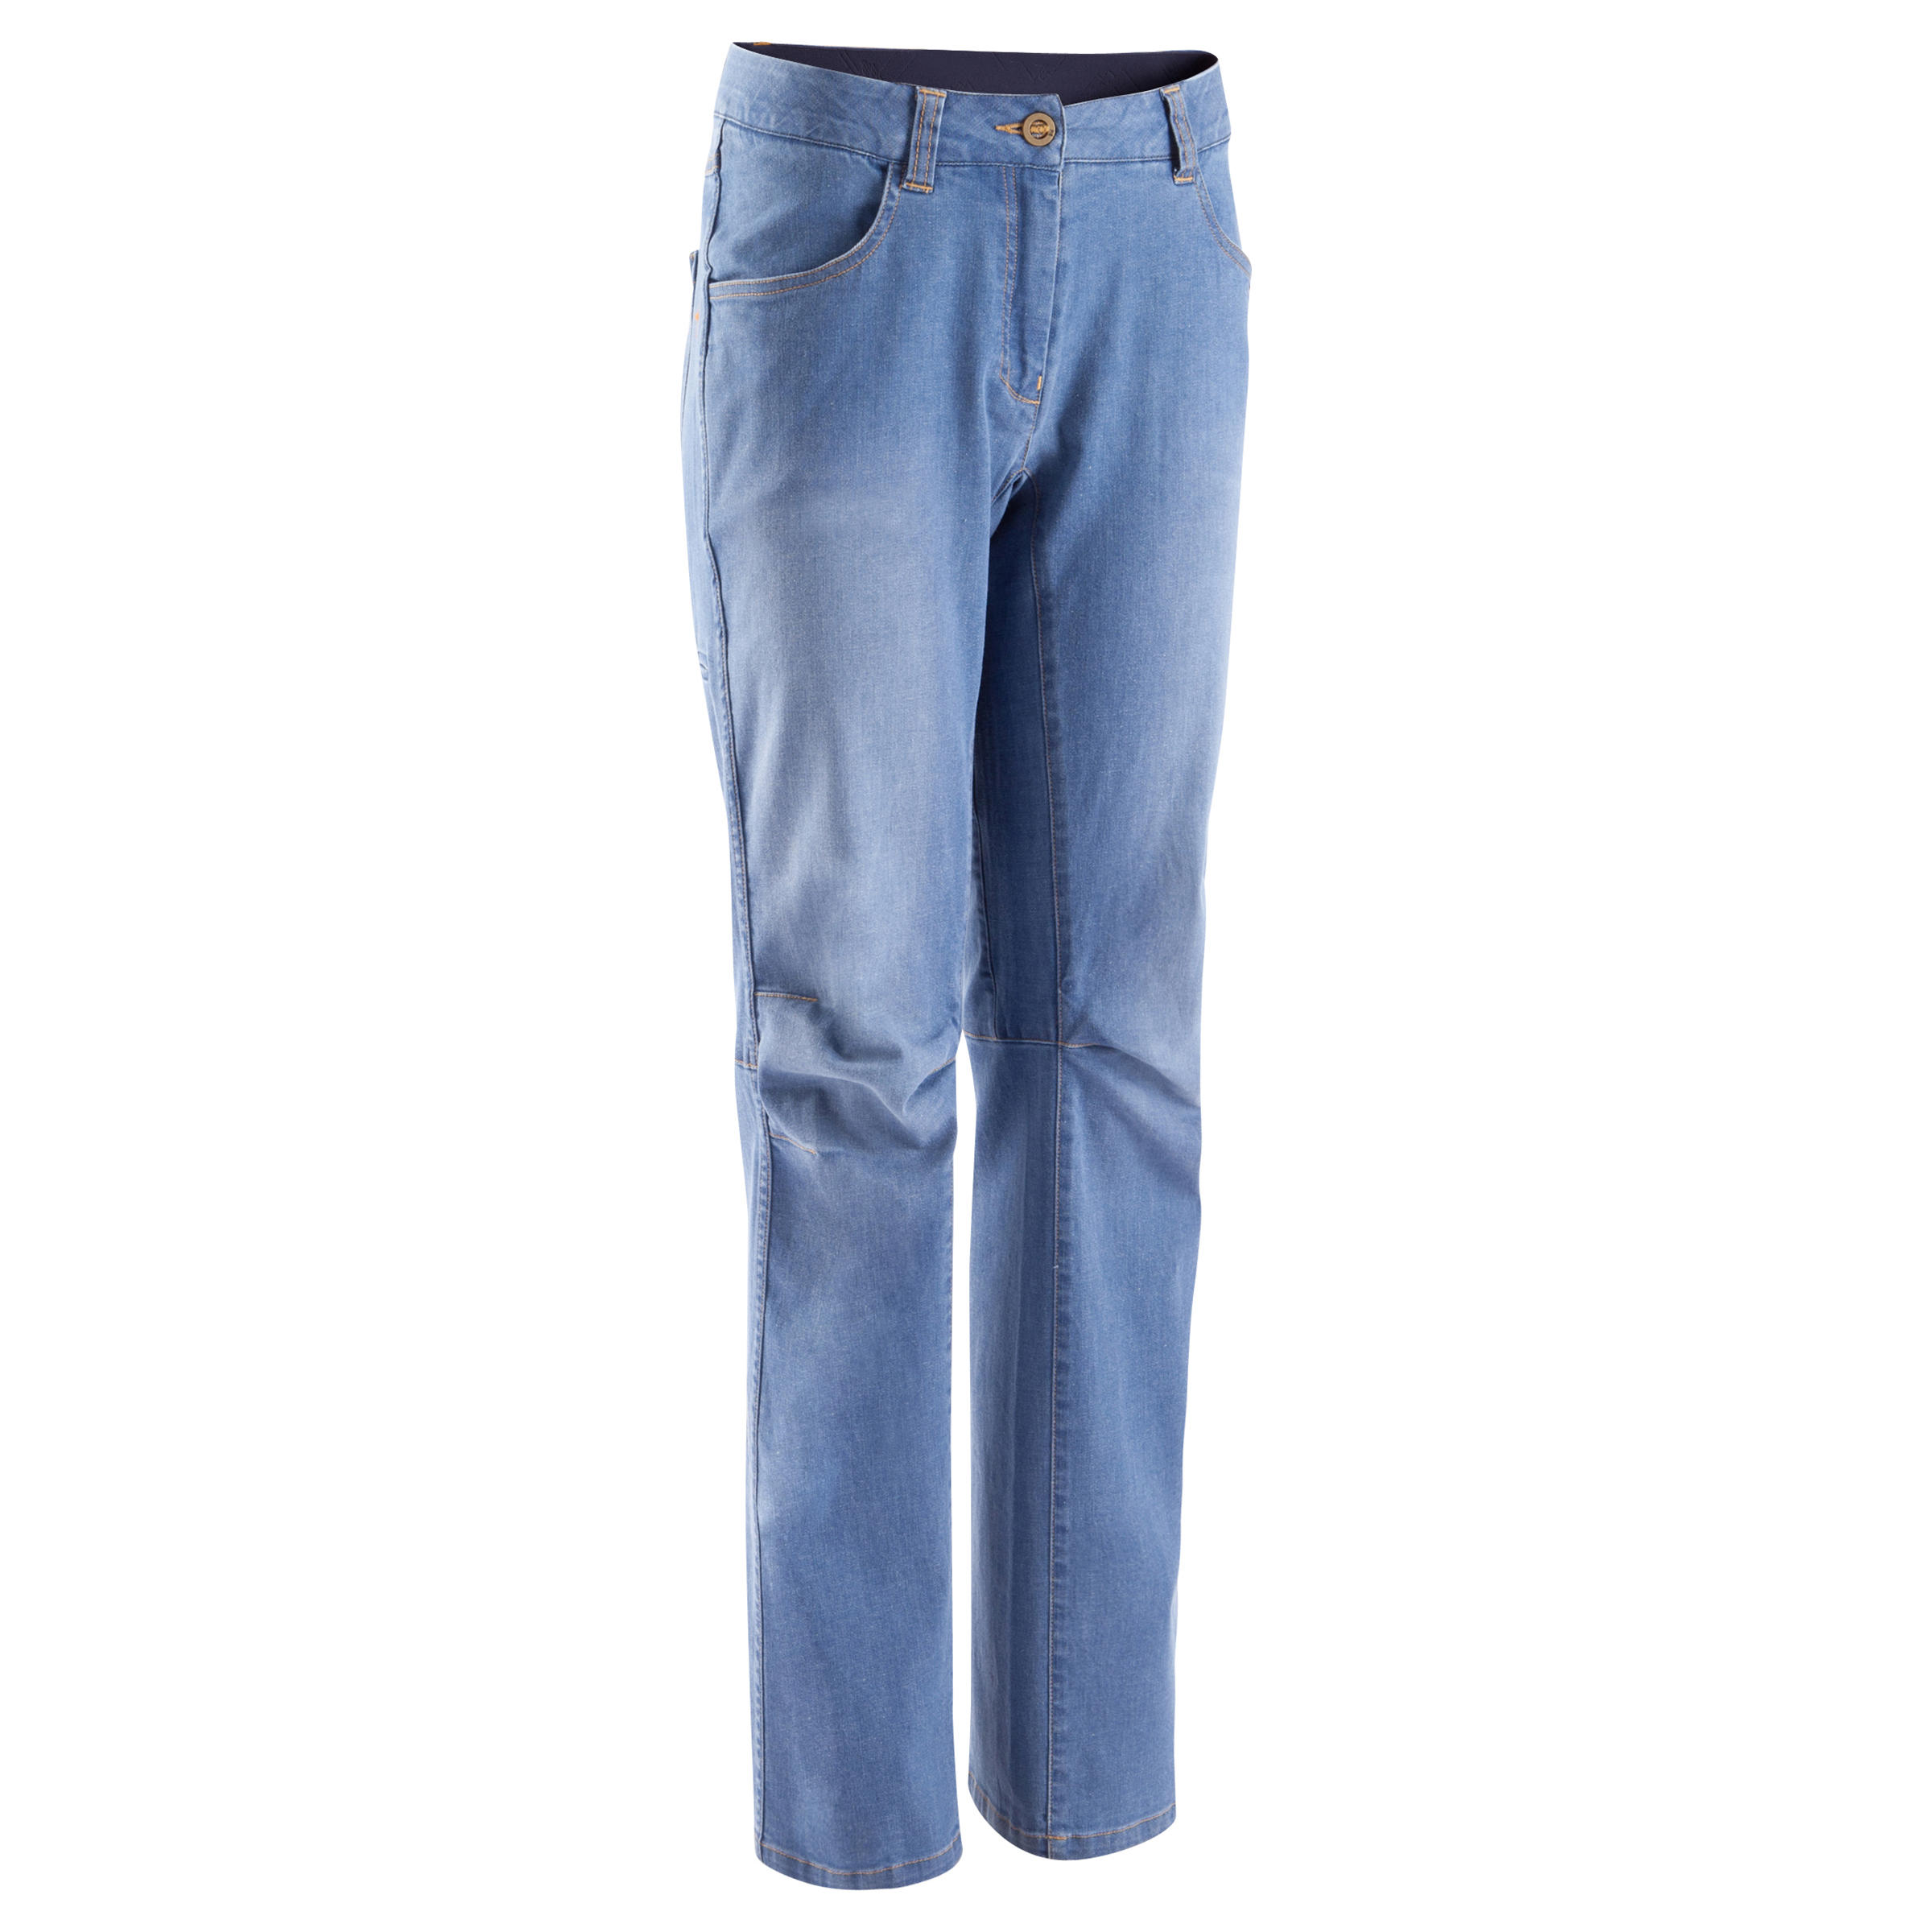 Used Jean2 Women's Pants